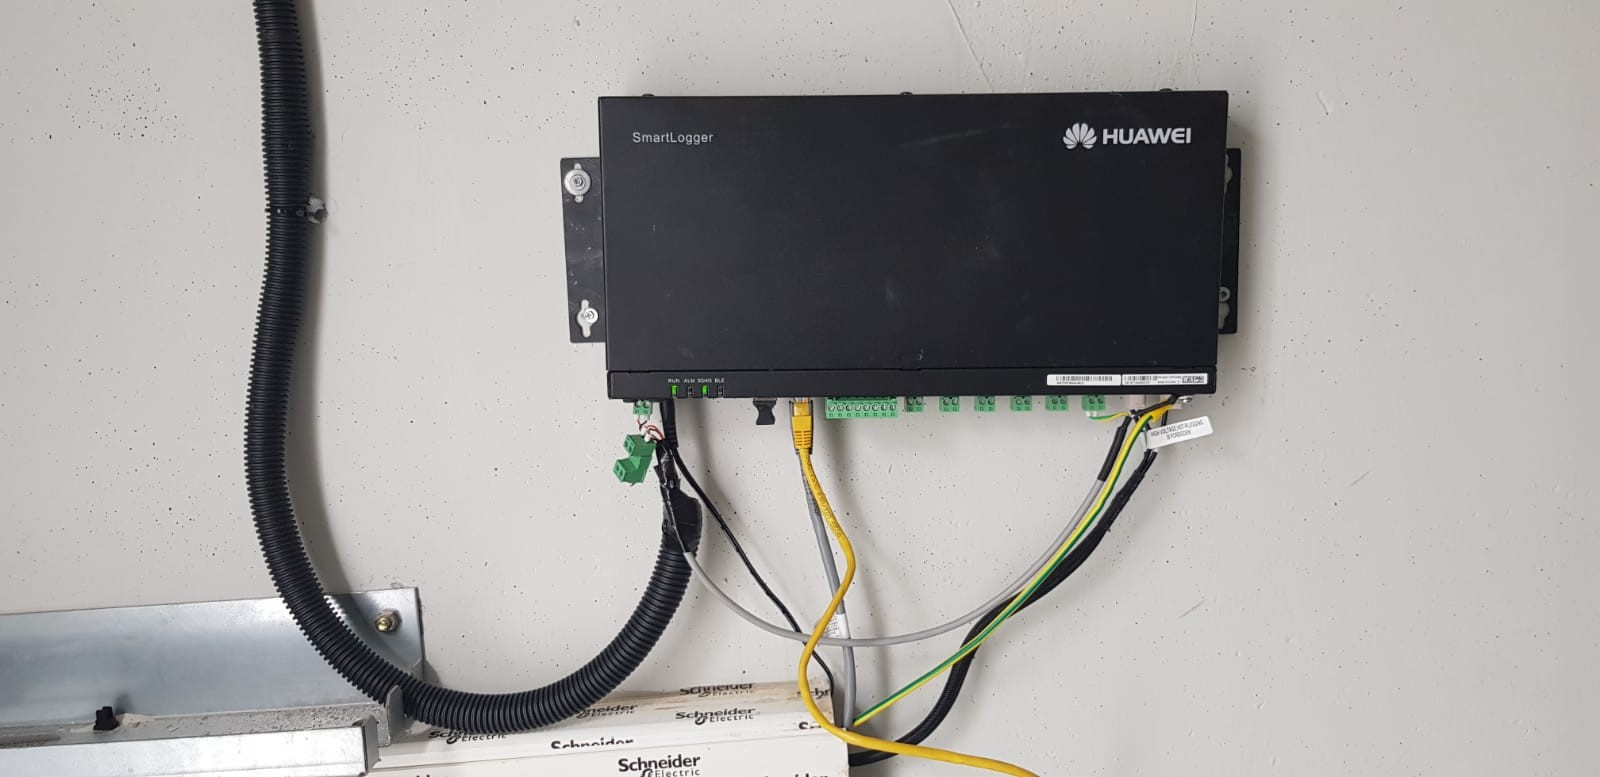 Huawei Smartlogger 2000 connections